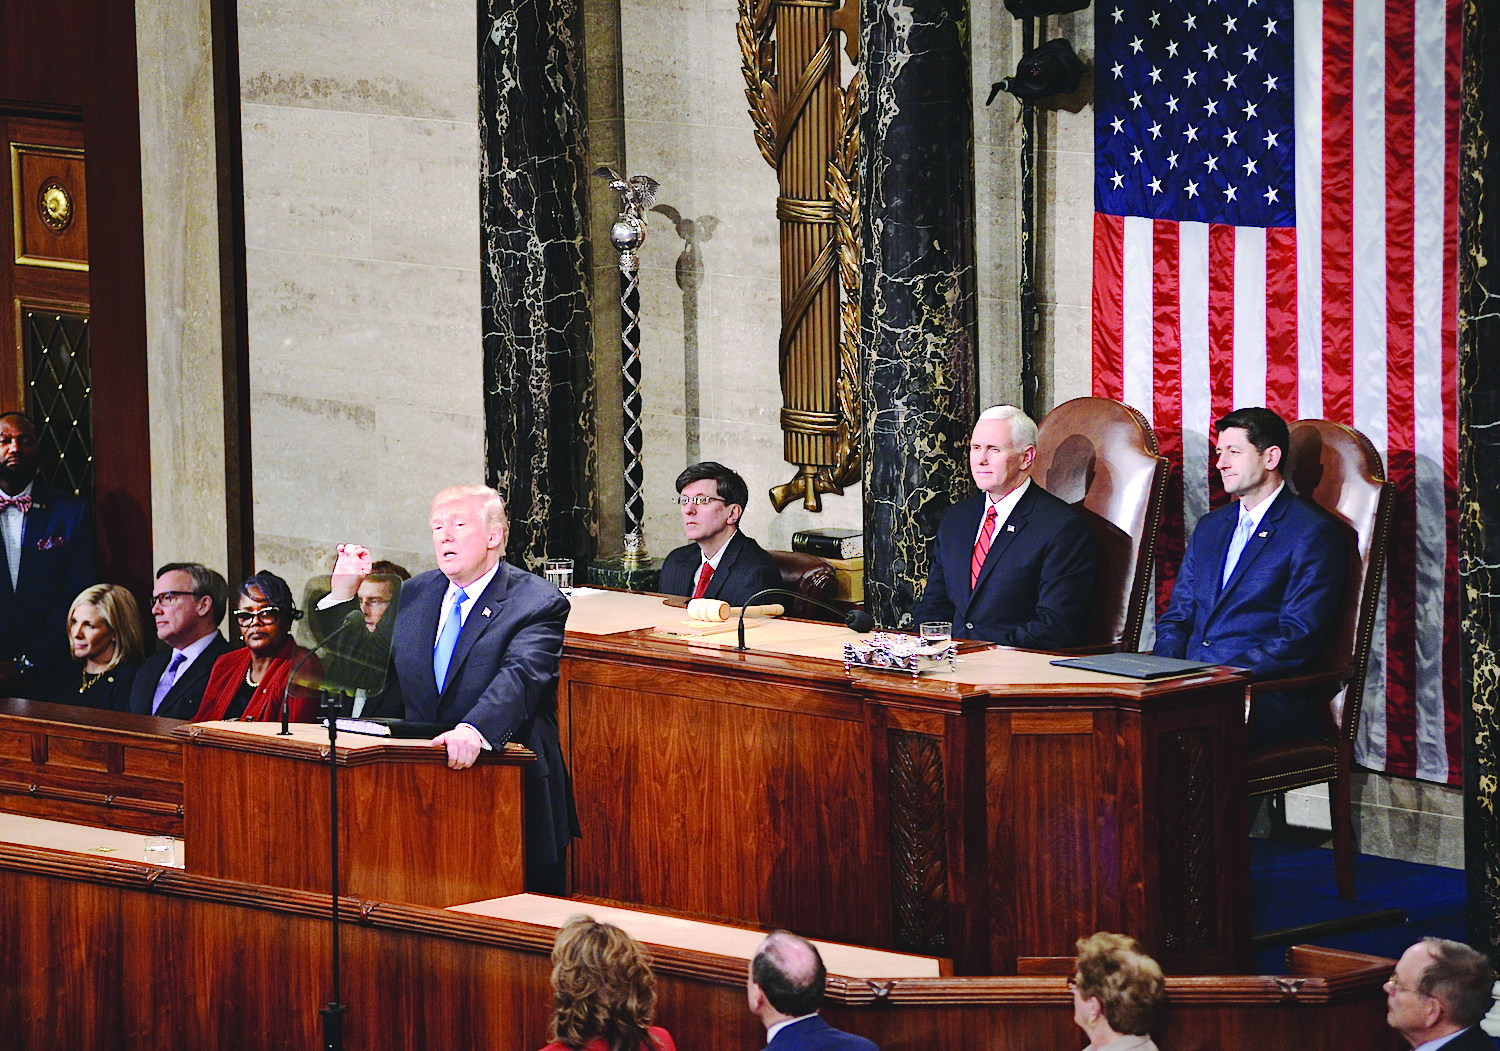 State of the Union: President Donald Trump, Vice President Mike Pence and Speaker of the House Paul Ryan.